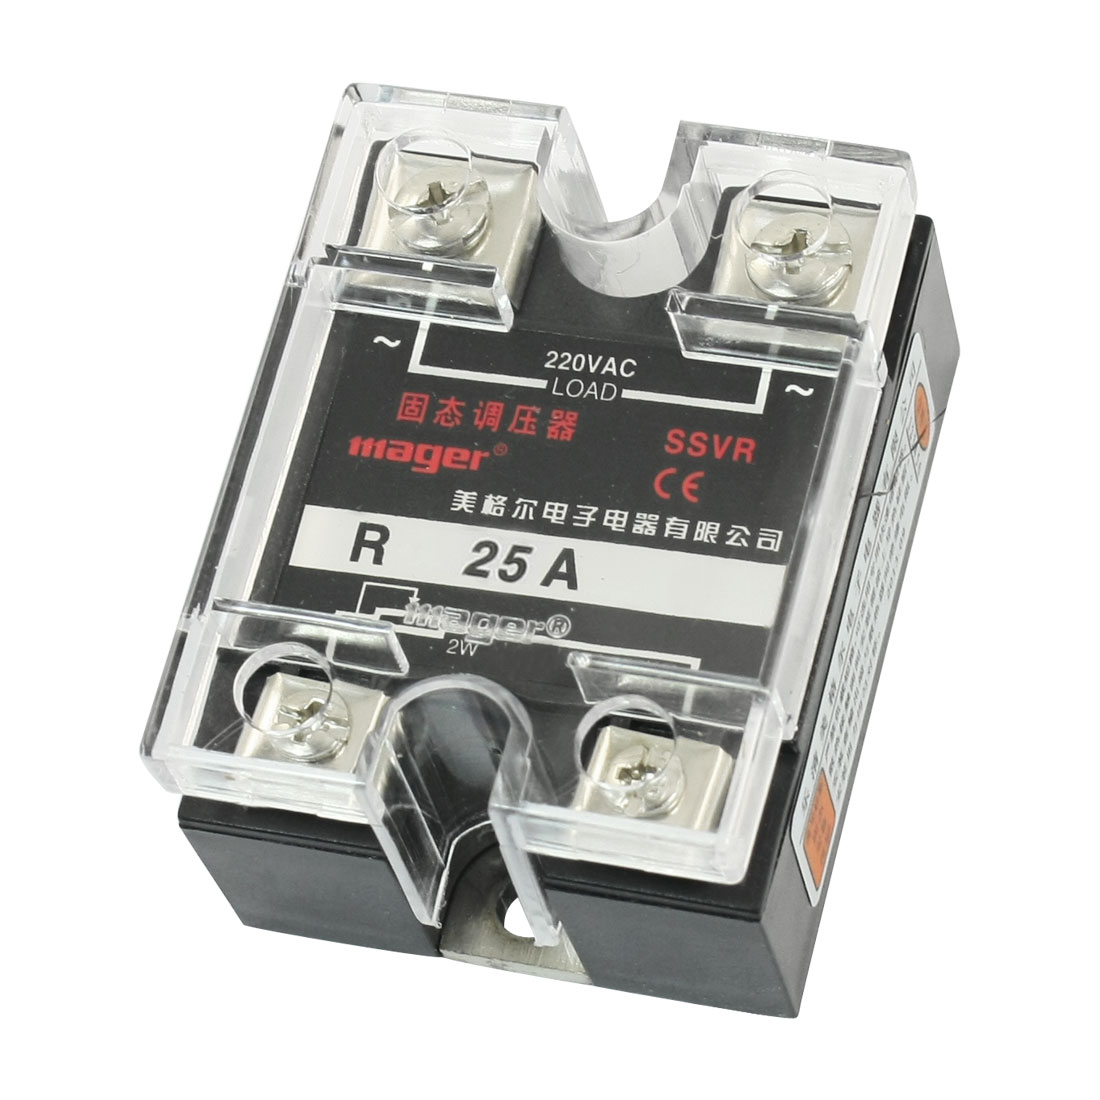 Resistance Adjustable Type Single Phase SSVR Solid State Relay Voltage Regulator AC 220V 25A 2W 470-560K Ohm